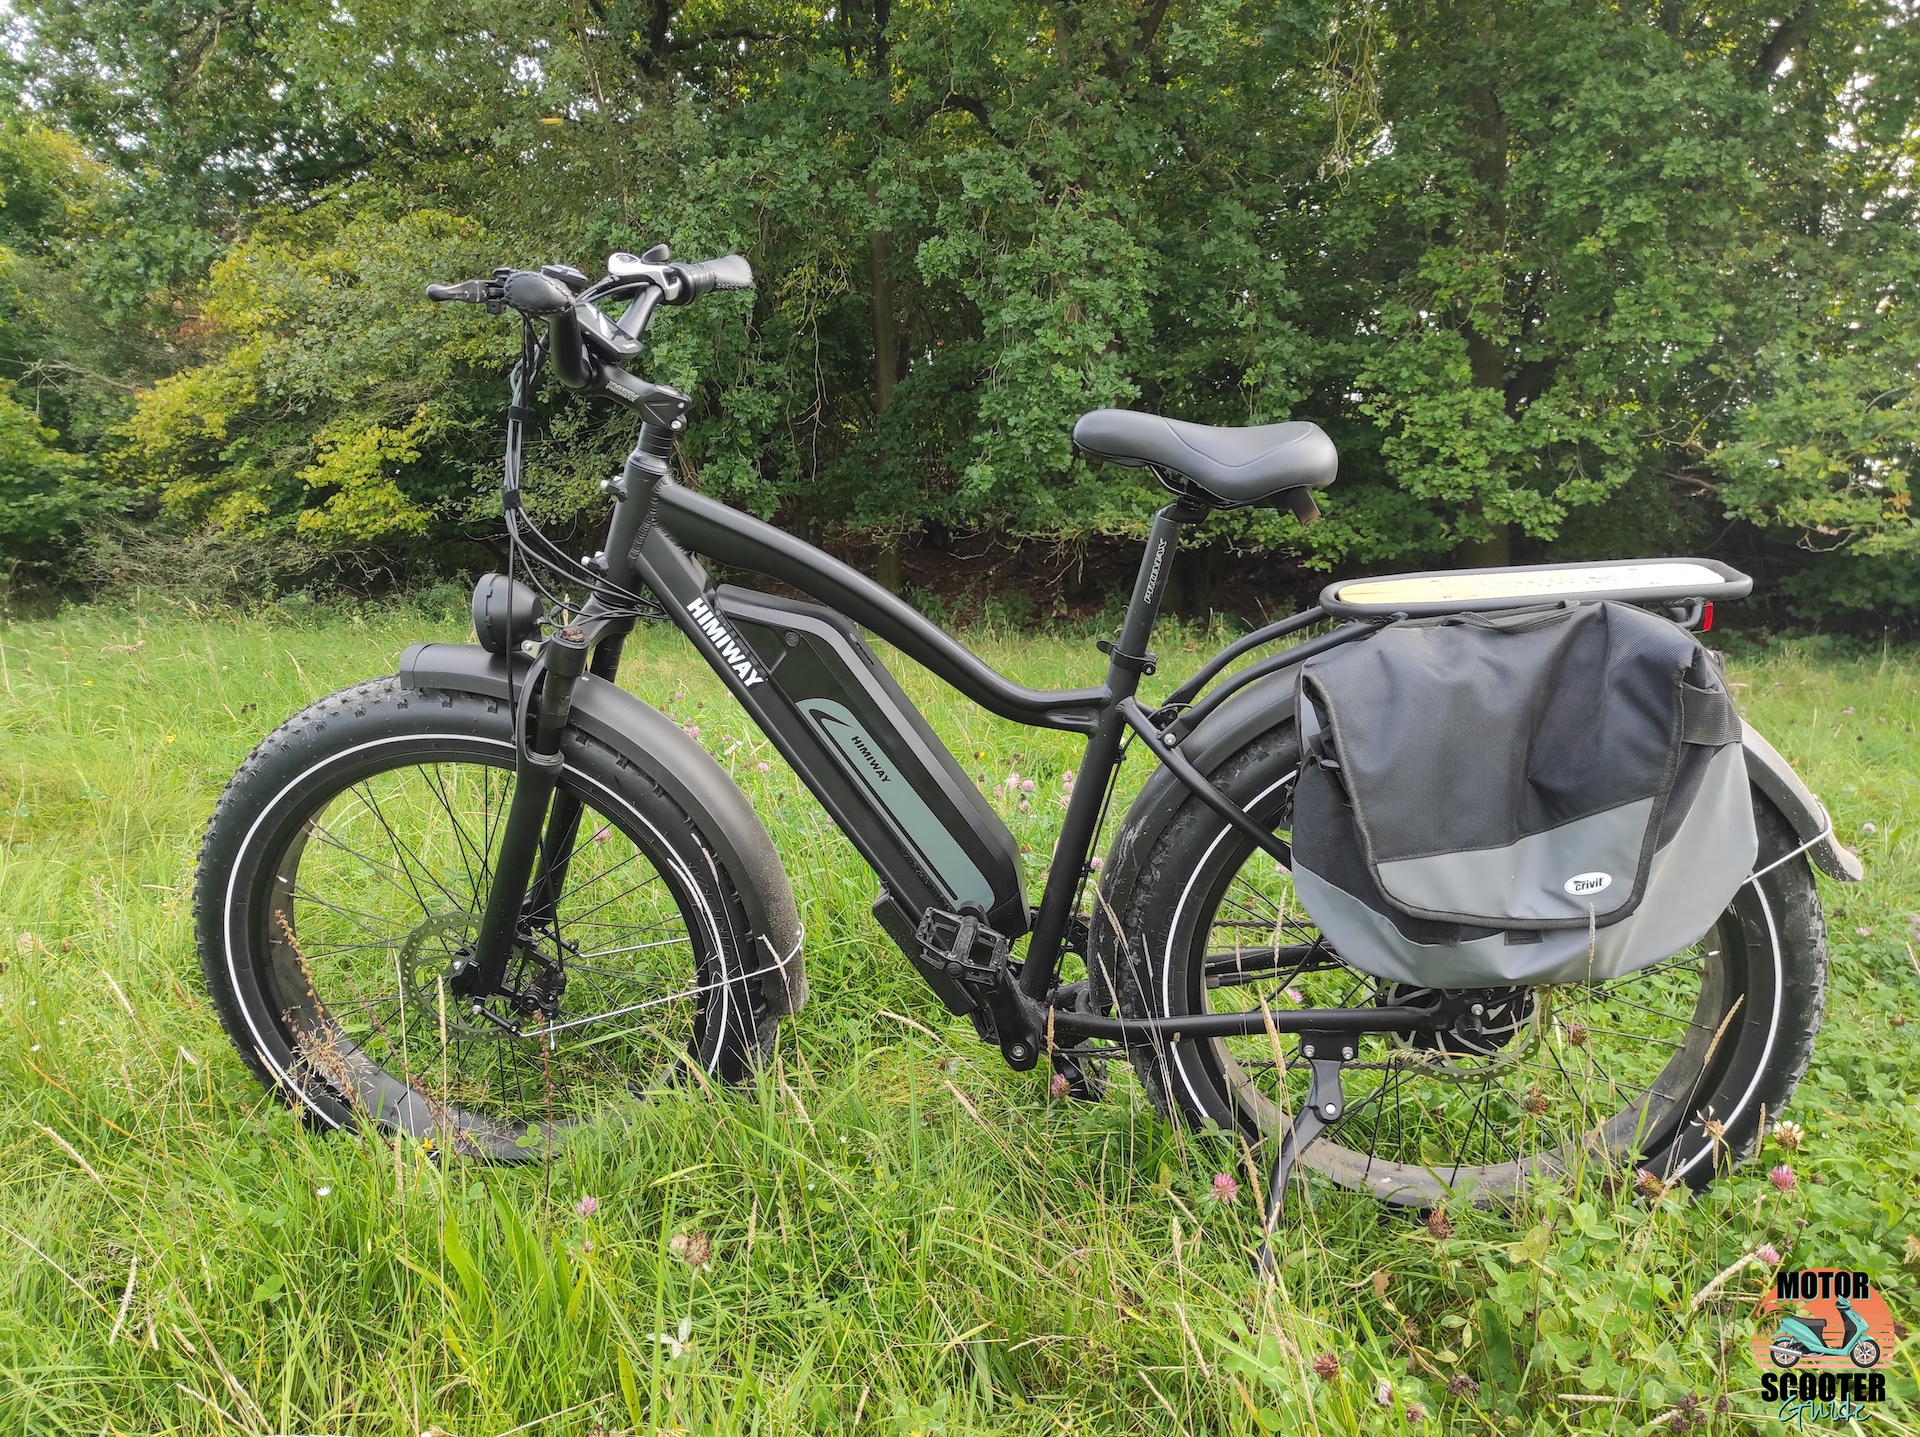 2021 Himiway All-Terrain Cruiser parked in grassy field